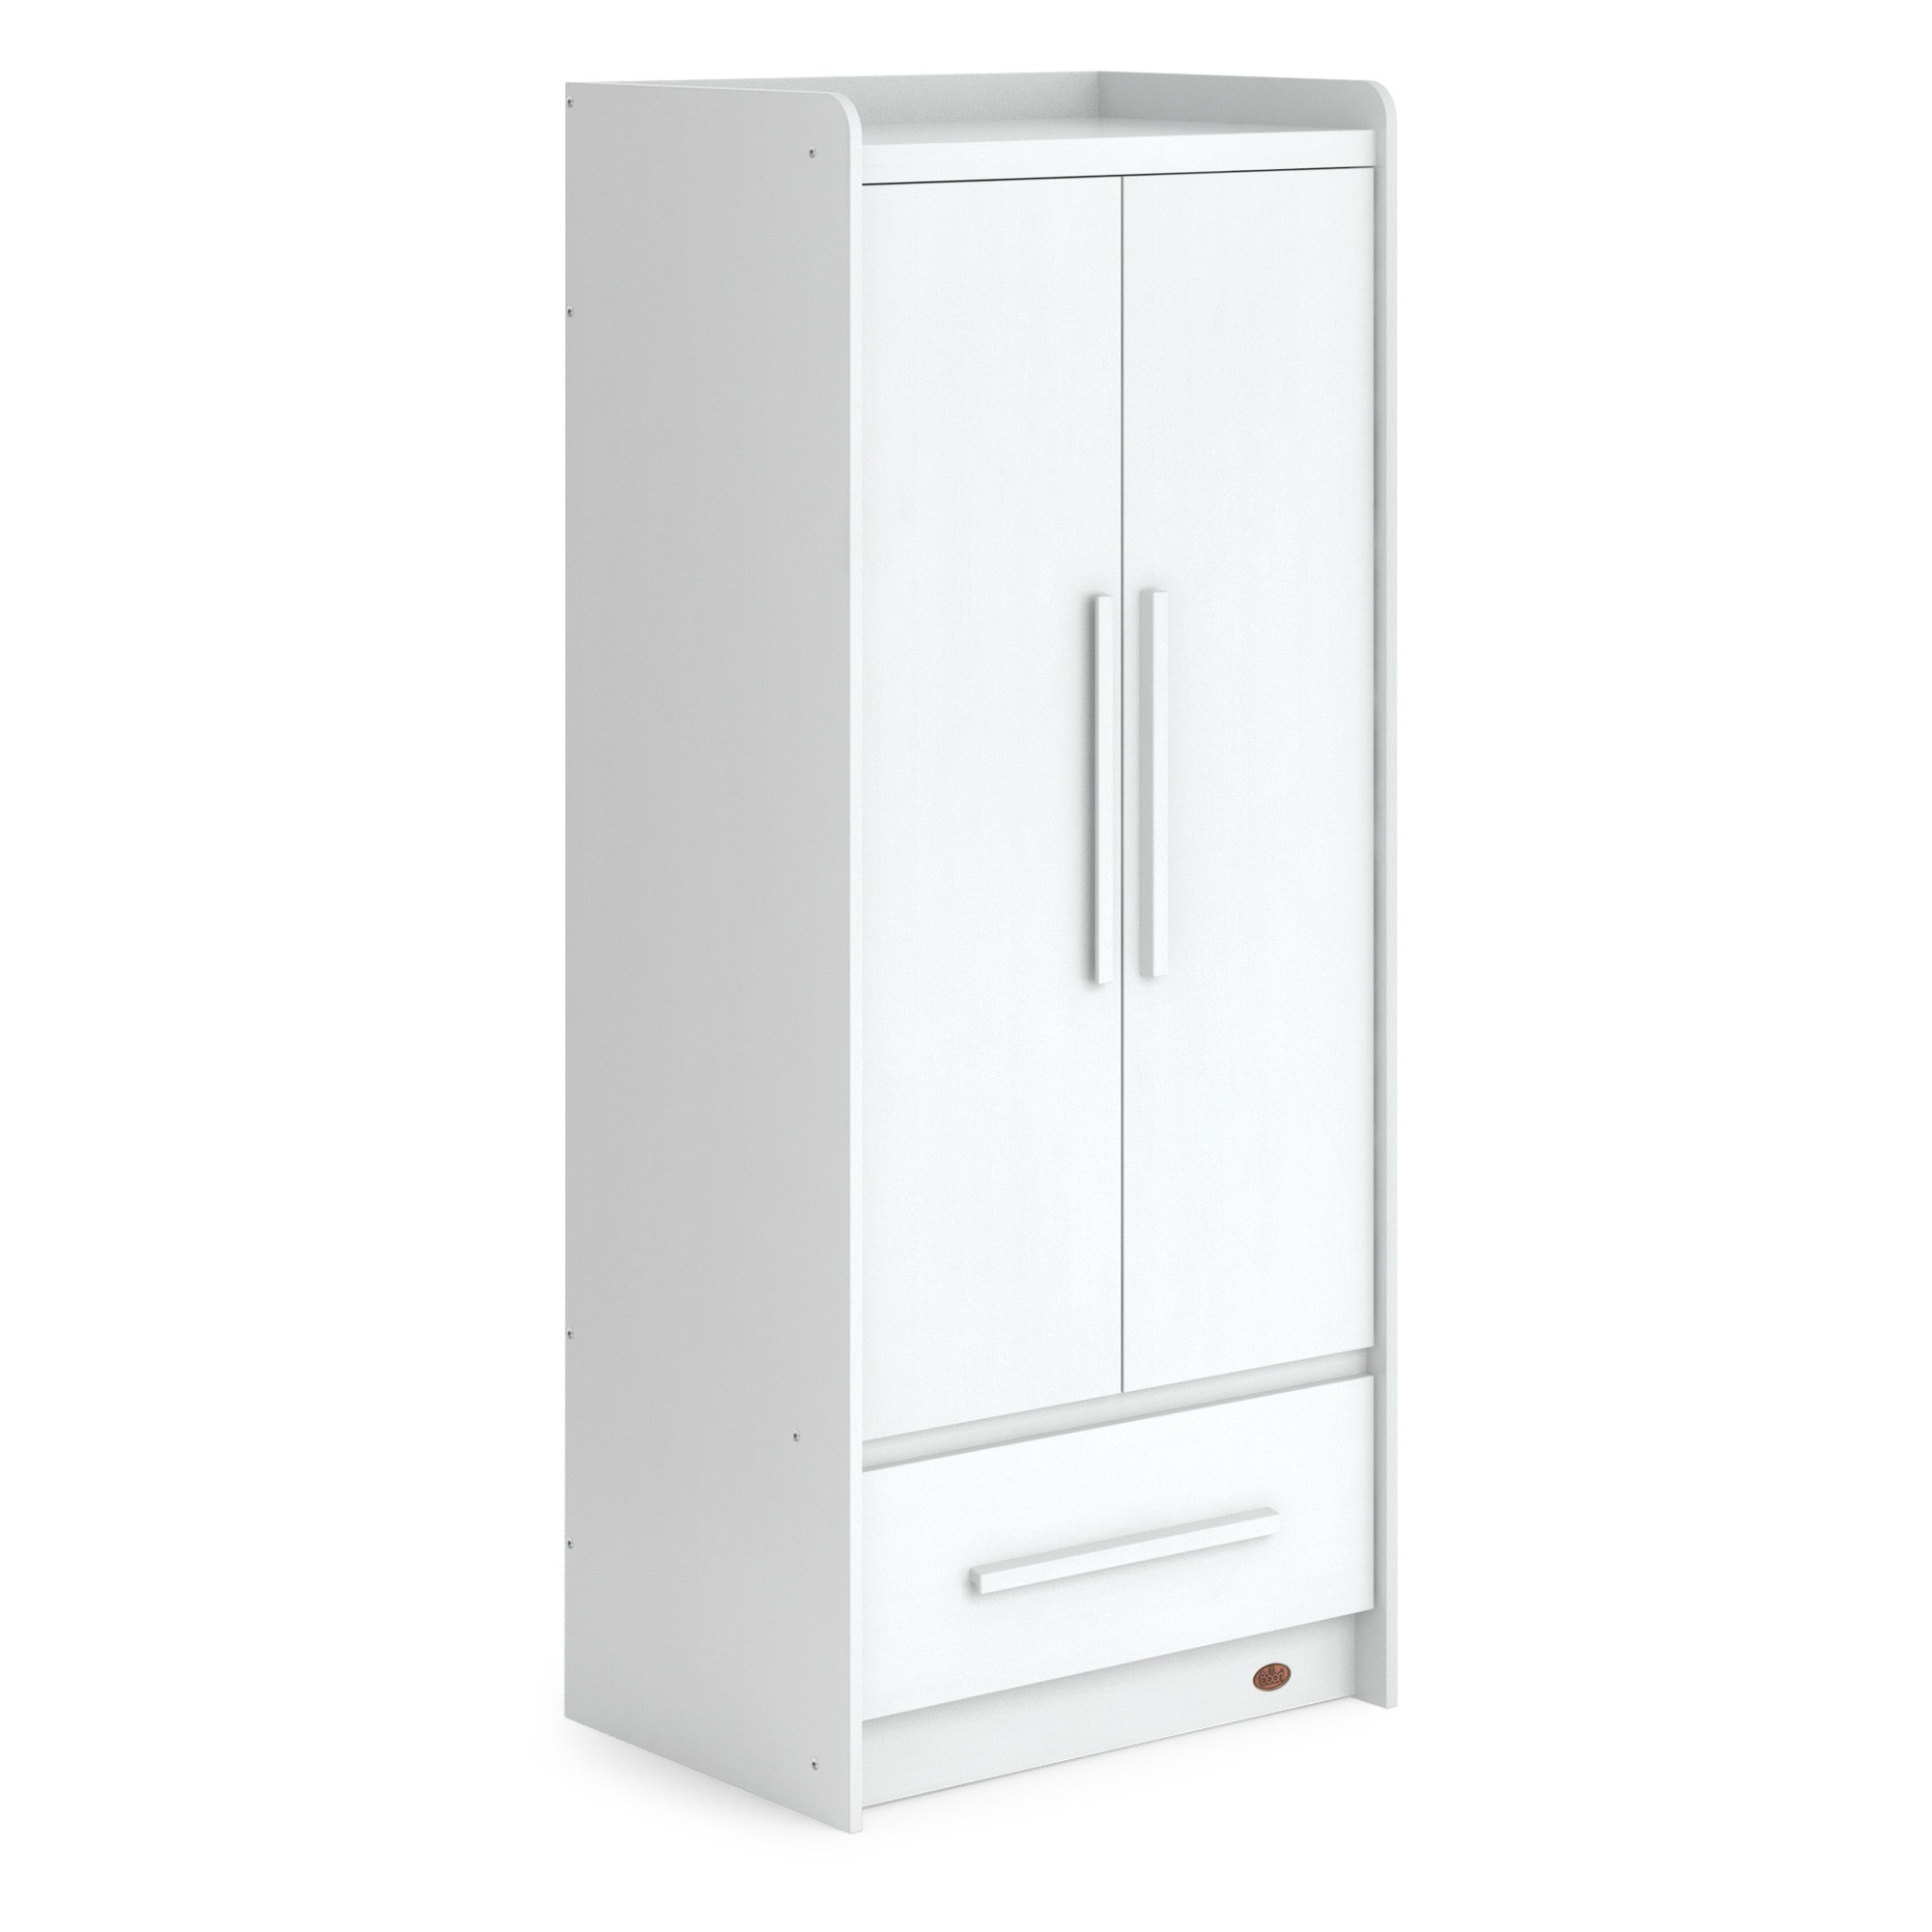 Boori Neat Wooden 2 Door Wardrobe, Barley White